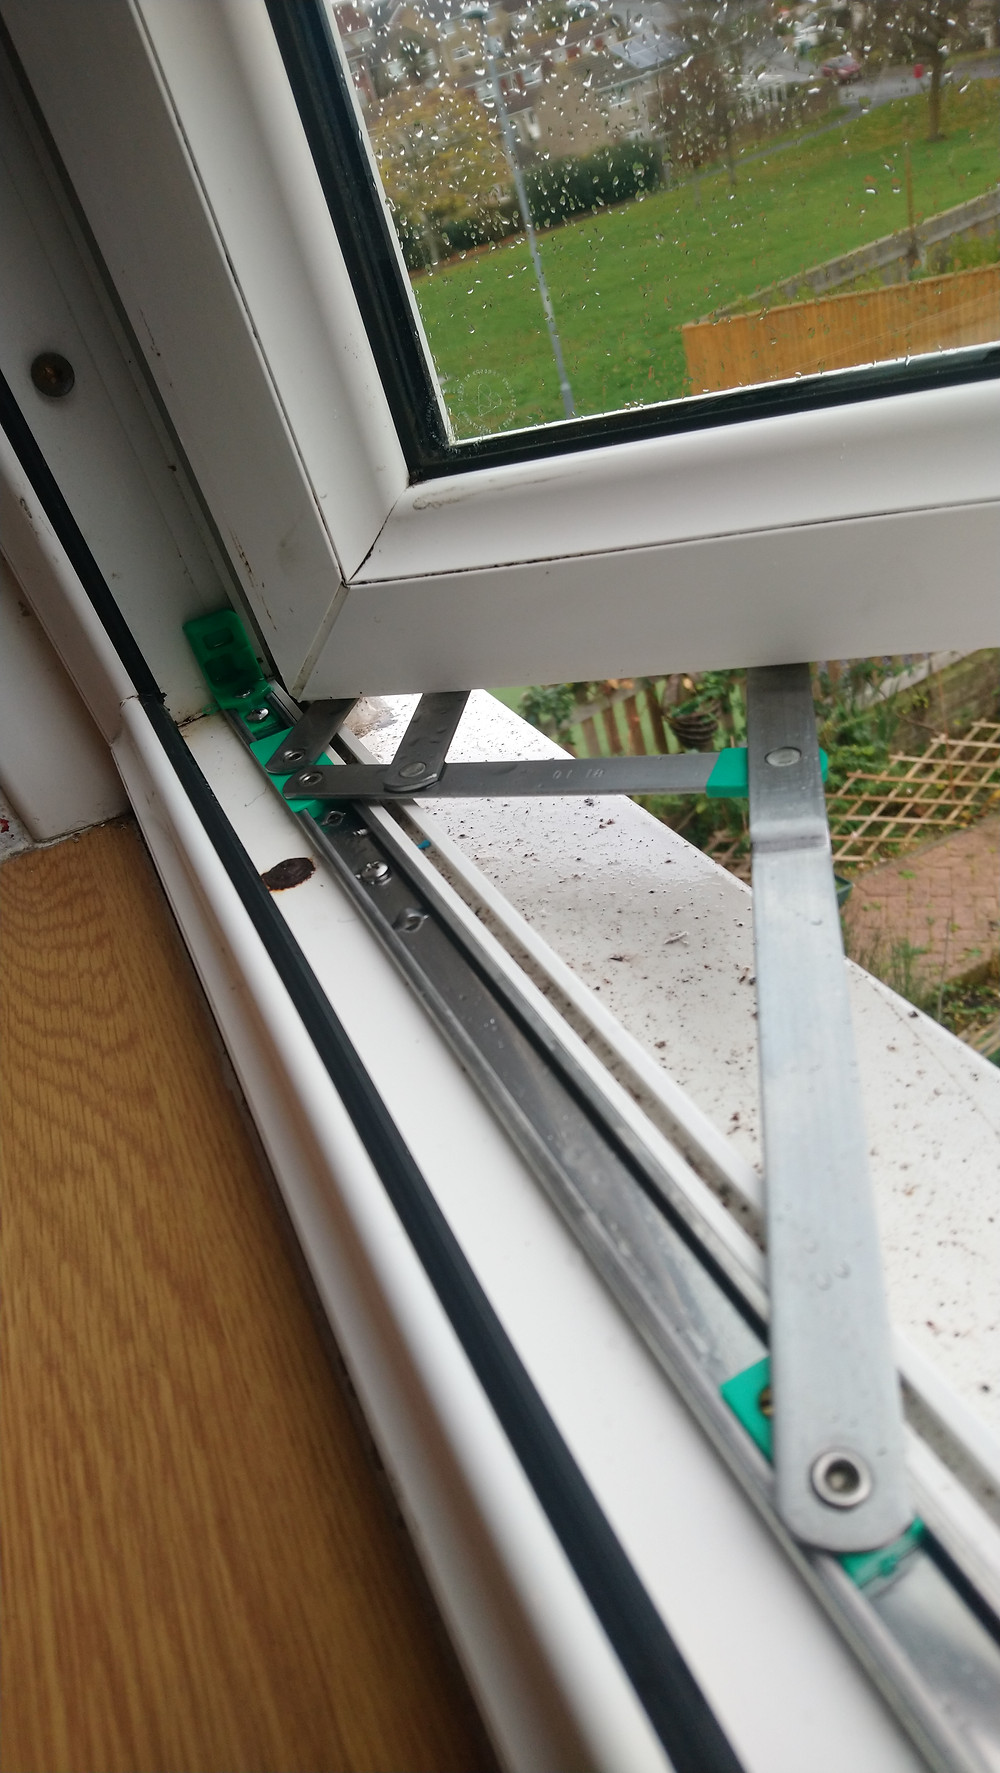 we carry spare replacement hinges for every type of window and can replace them with ease, making your window openings air tight again. Free from insects and spiders and clean